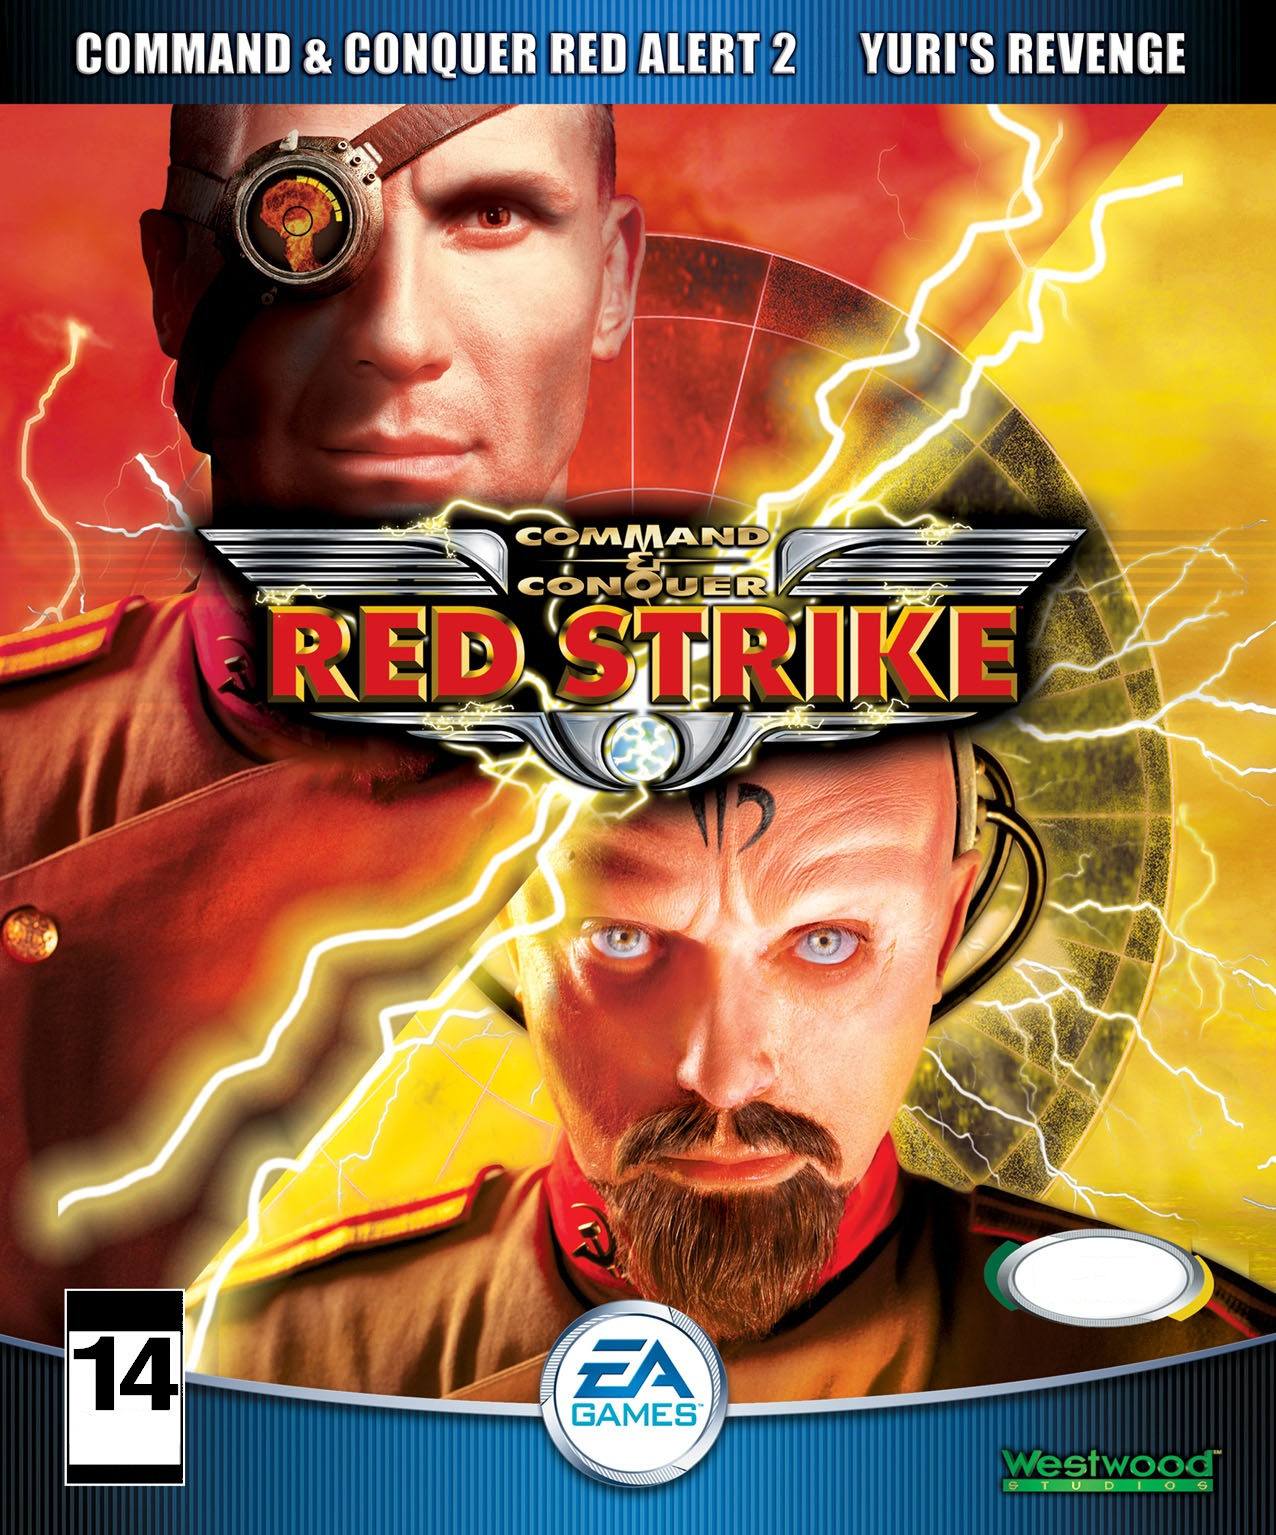 Red Alert 2 And Yuris Revenge Download